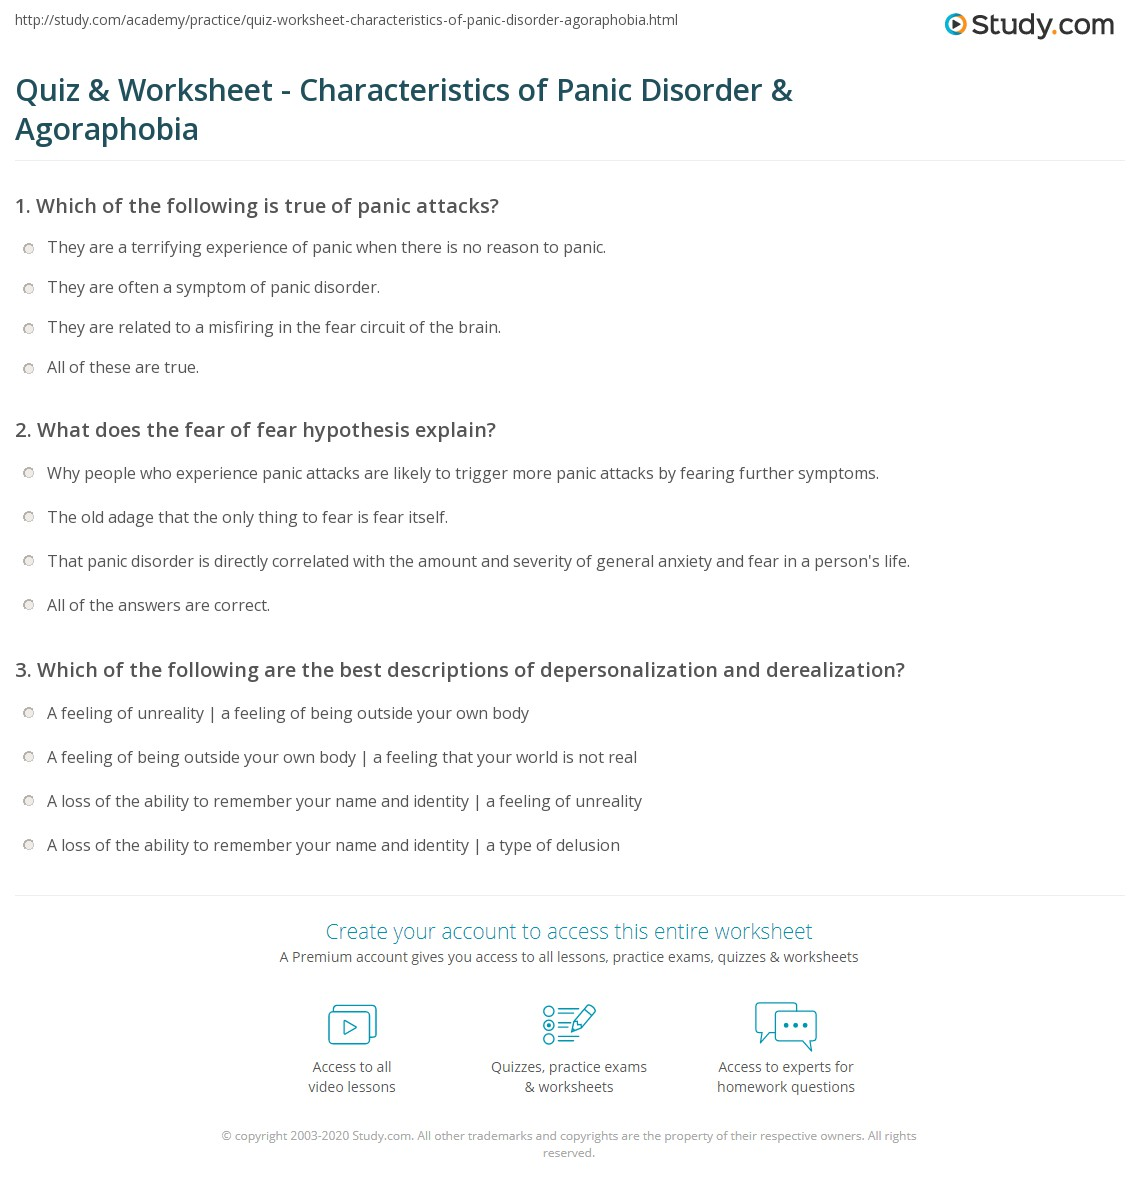 quiz & worksheet - characteristics of panic disorder & agoraphobia